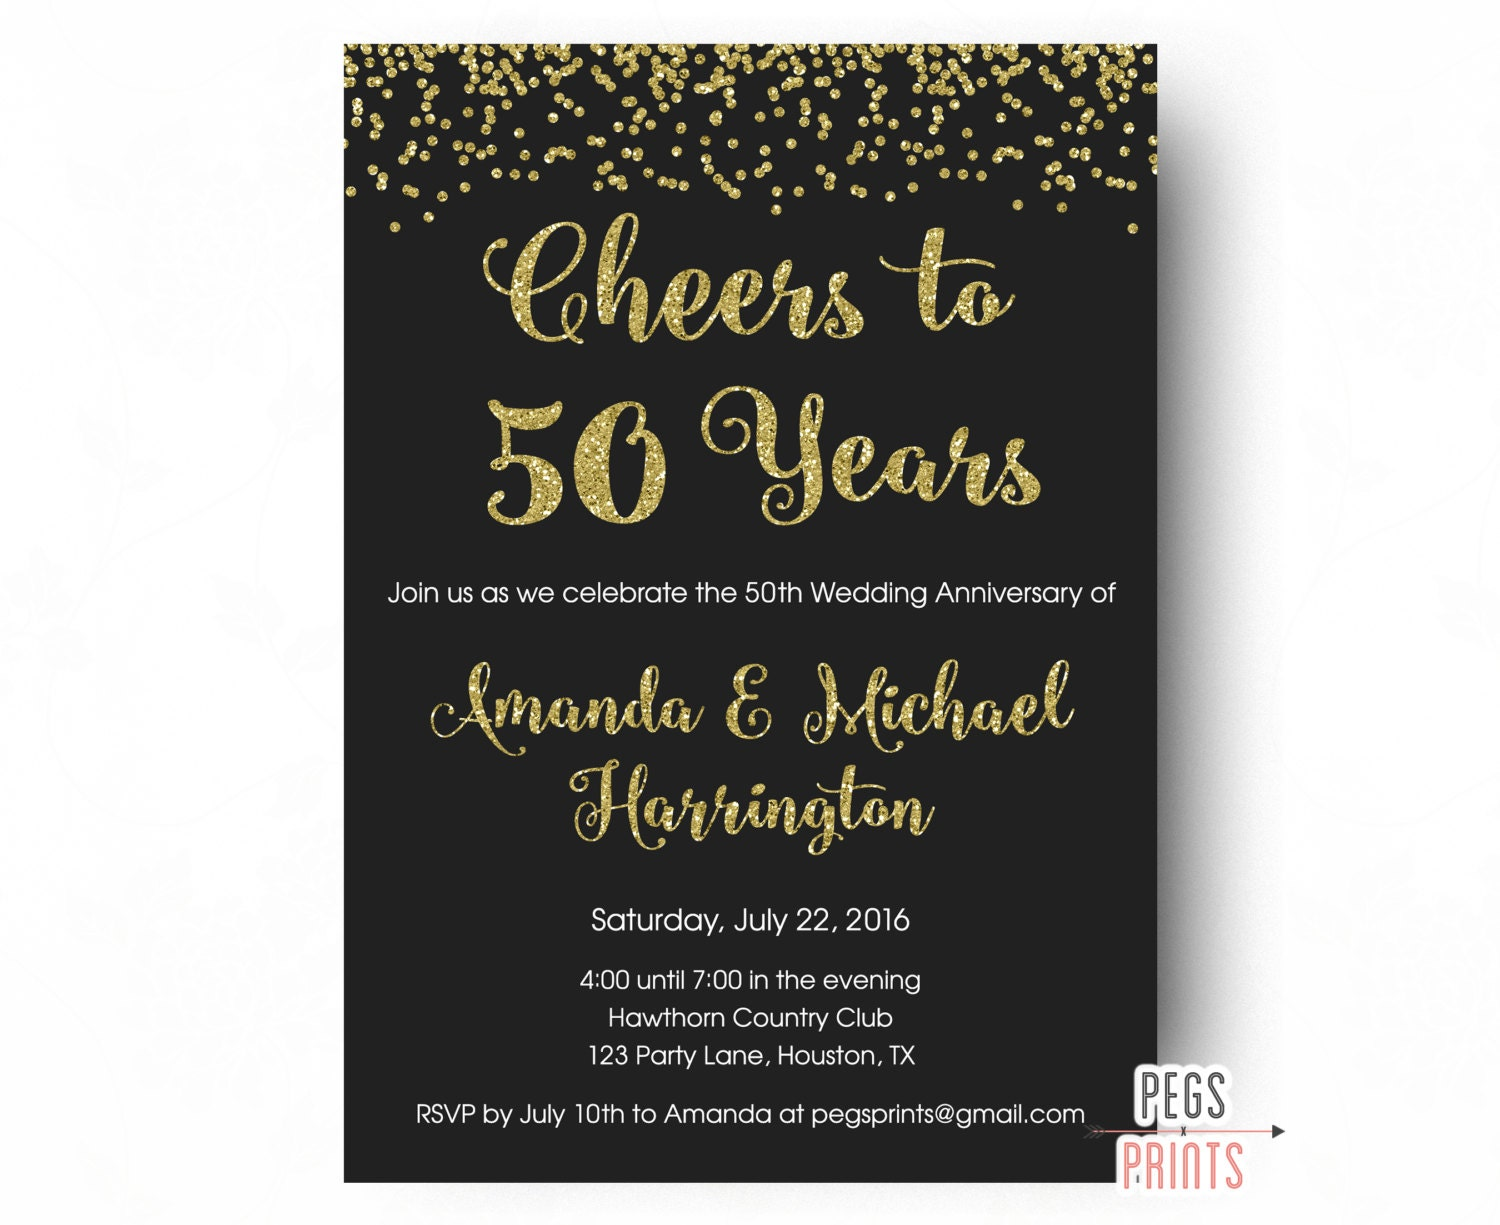 50th year anniversary invitations